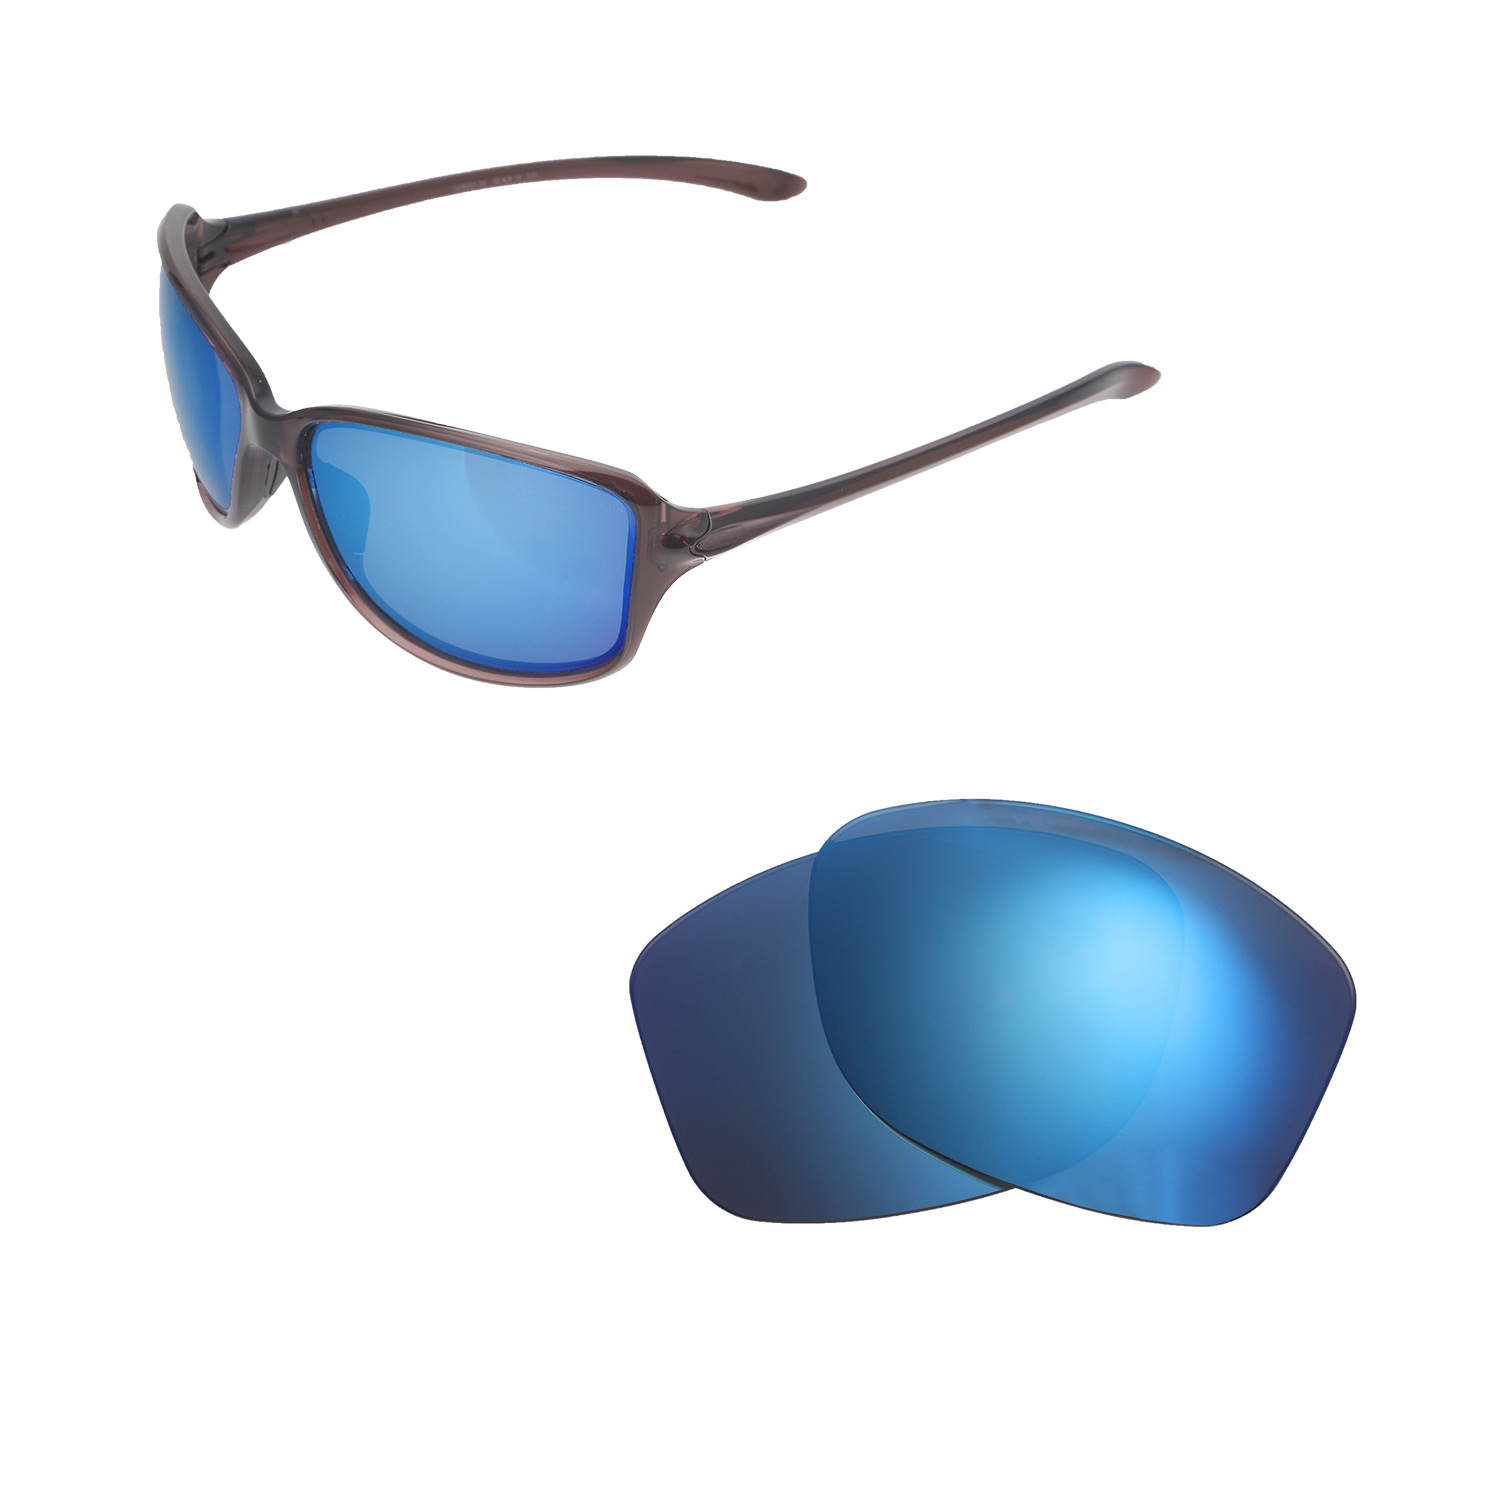 2734067a62 Details about New Walleva Ice Blue Polarized Replacement Lenses For Oakley  Cohort Sunglasses